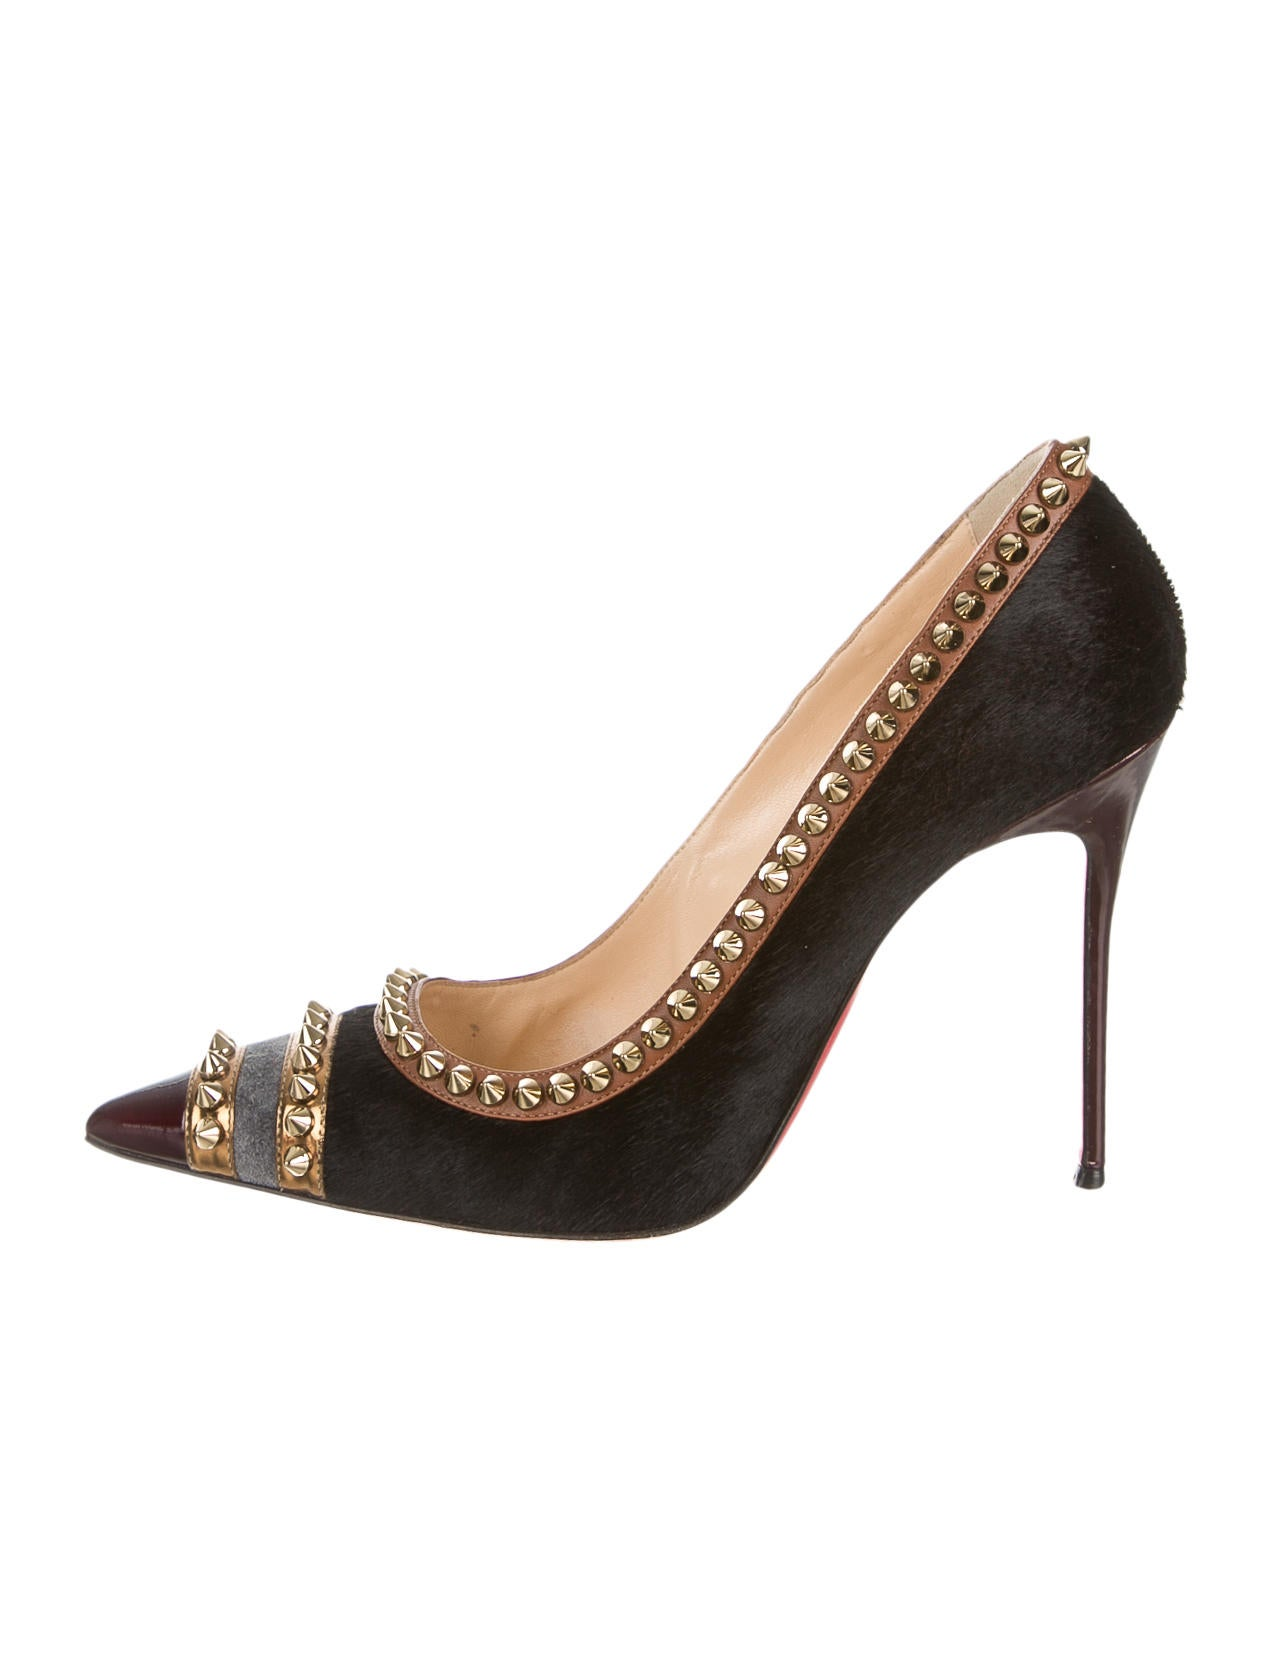 8a2c7d00edd Black Spiked Louboutin Heels Video Nick Cannon Shoe Collection | BASF